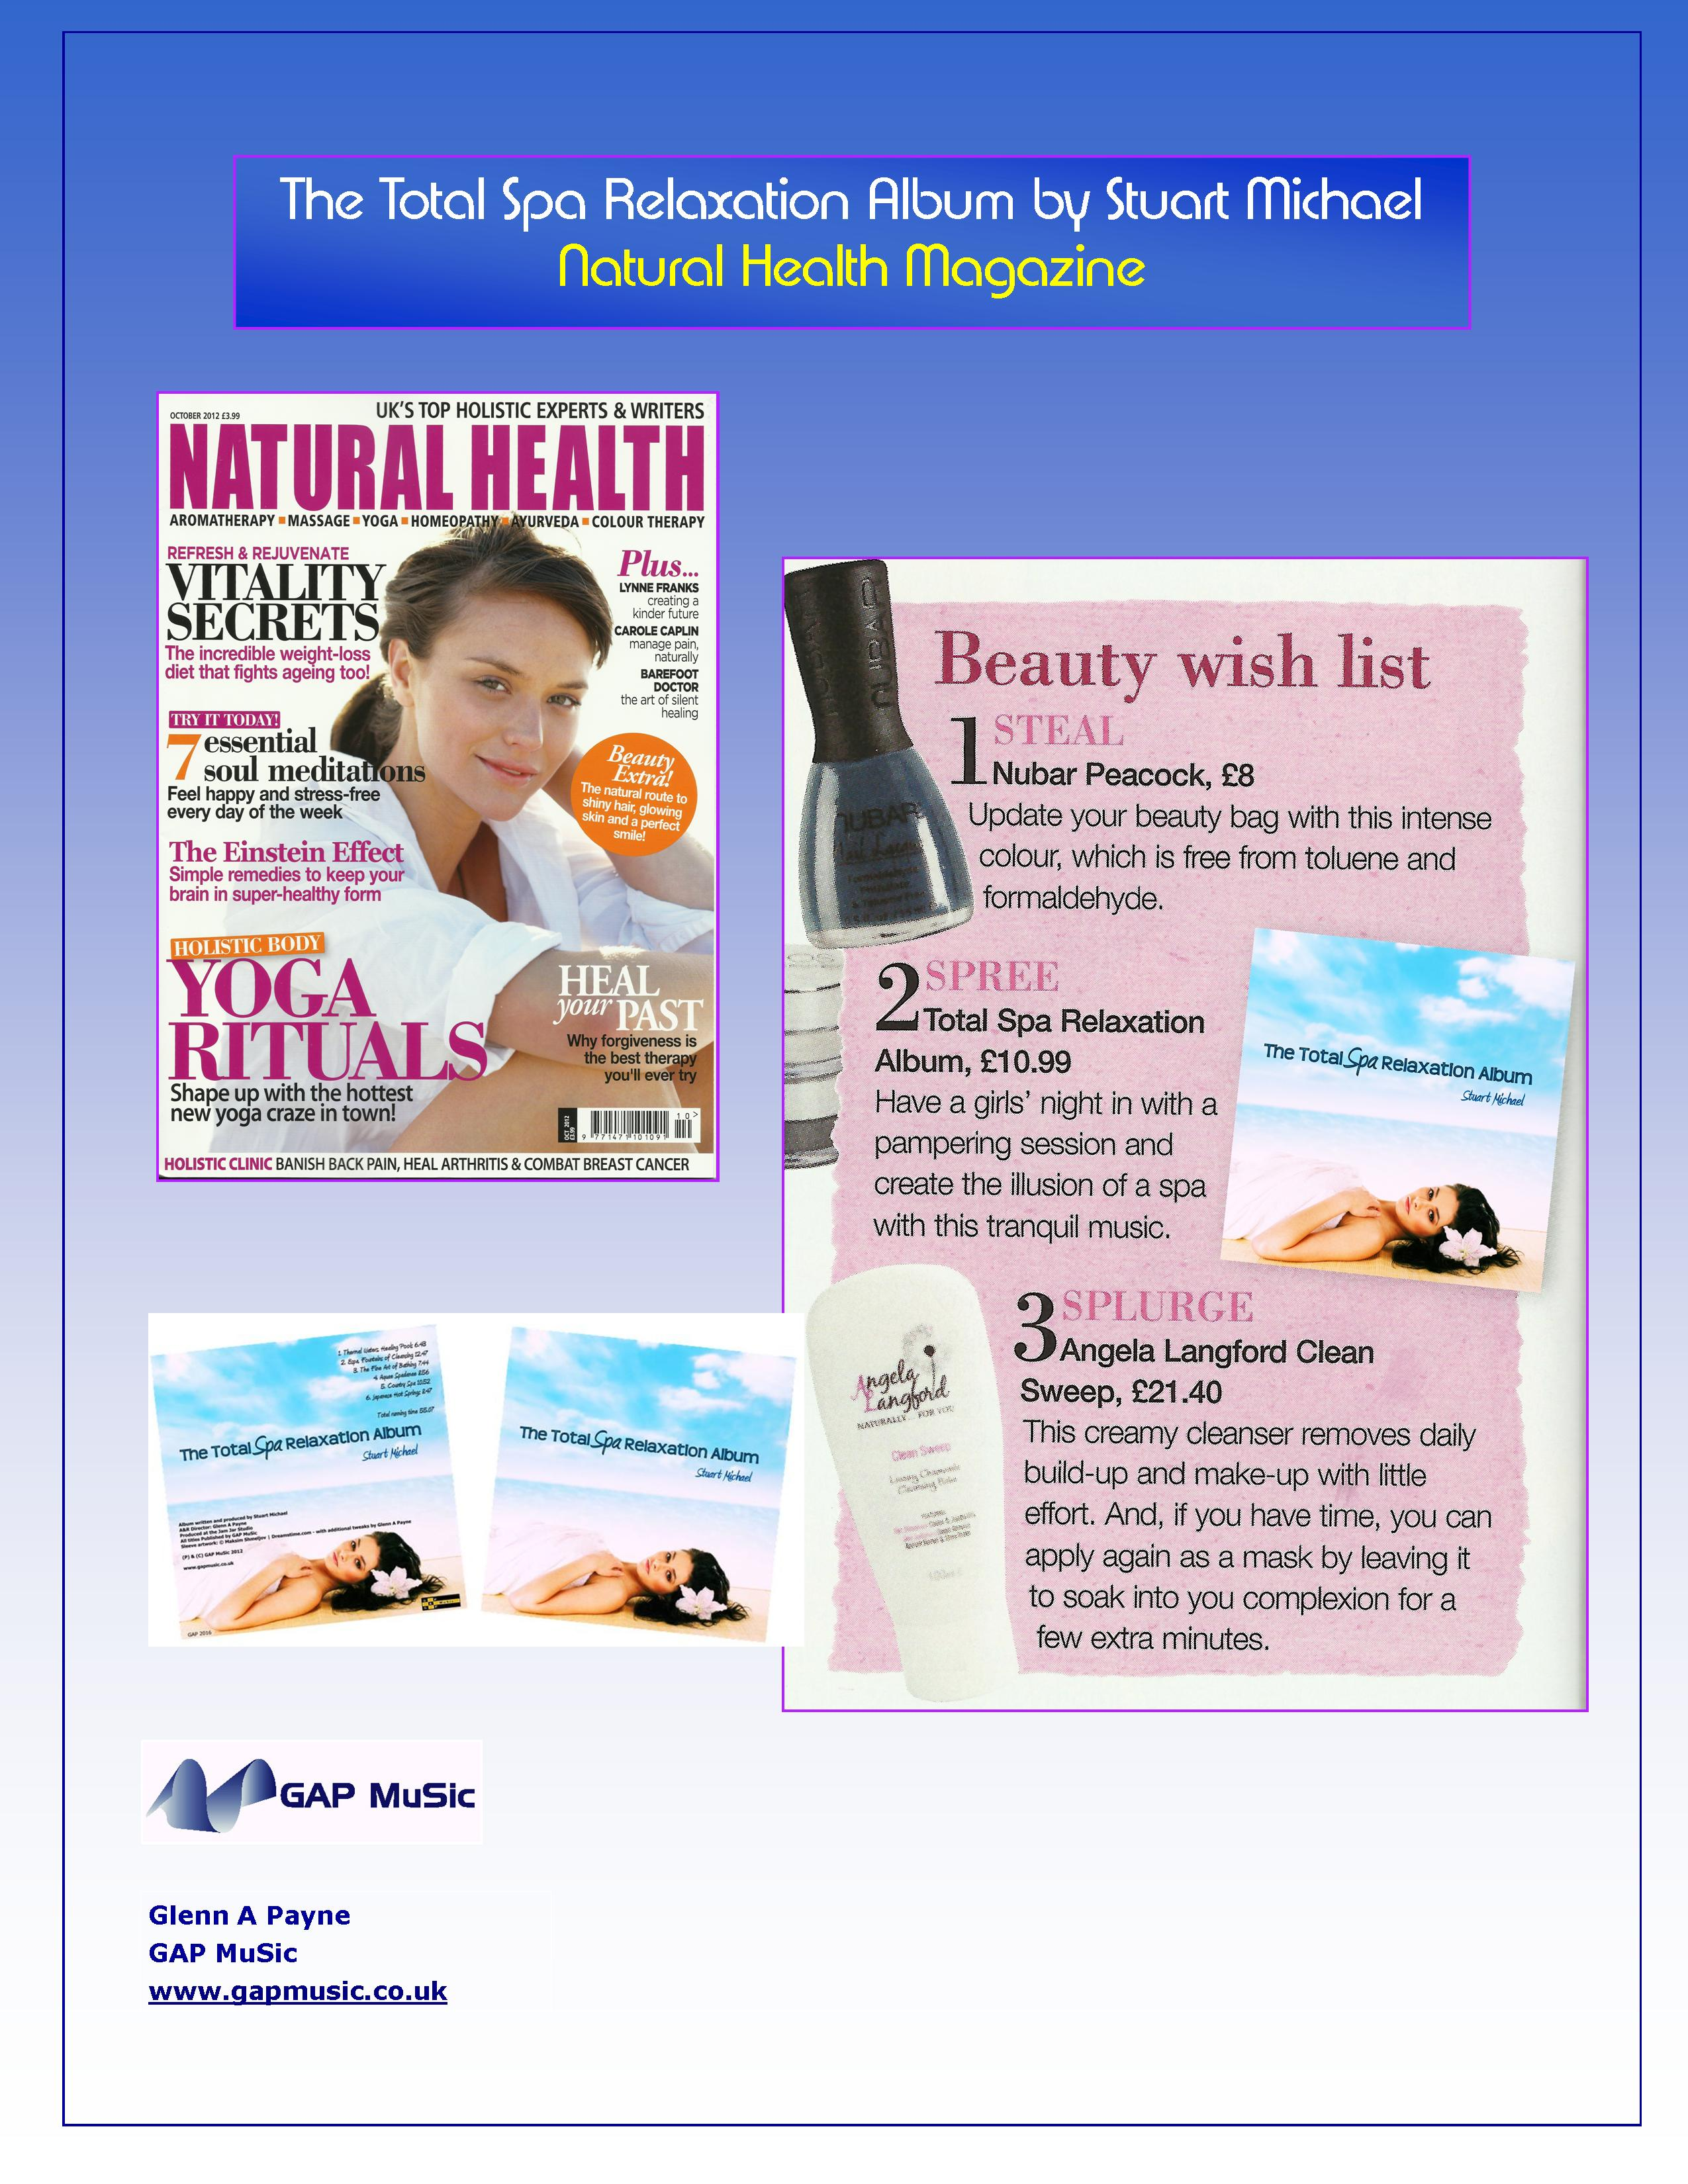 The Total Spa Relaxation Album - Natural Health Magazine